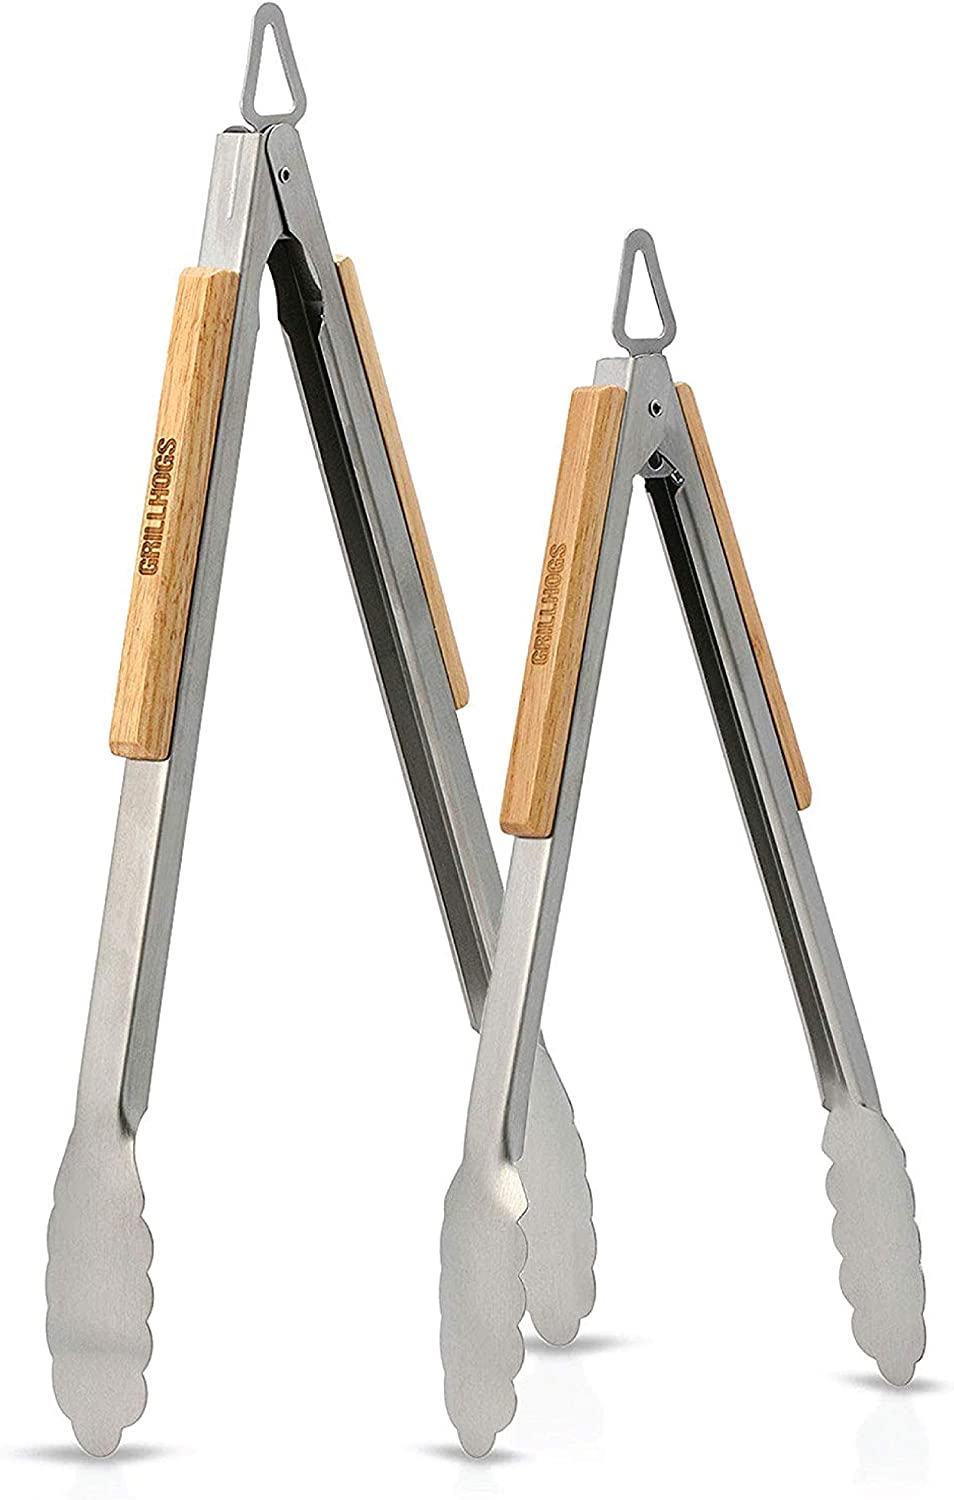 GRILLHOGS Barbecue Grill Tongs, 12 & 16 Inch 2,Pack, Best Metal Kitchen Tongs for Cooking and Grill Accessories, Stainless Steel + Oak Wood BBQ Tongs